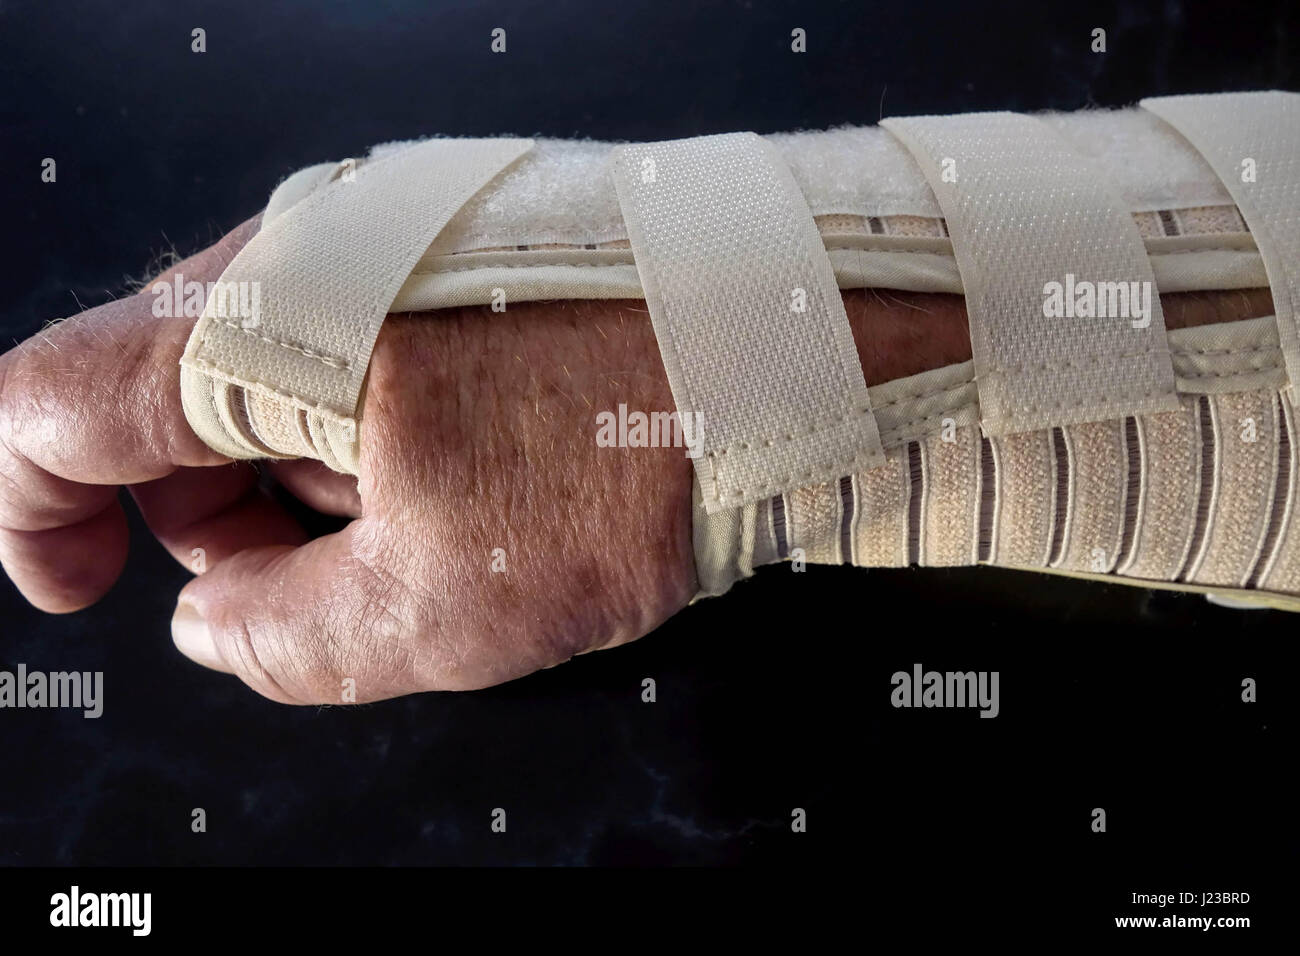 Sprained Wrist Support. Right Hand - Stock Image